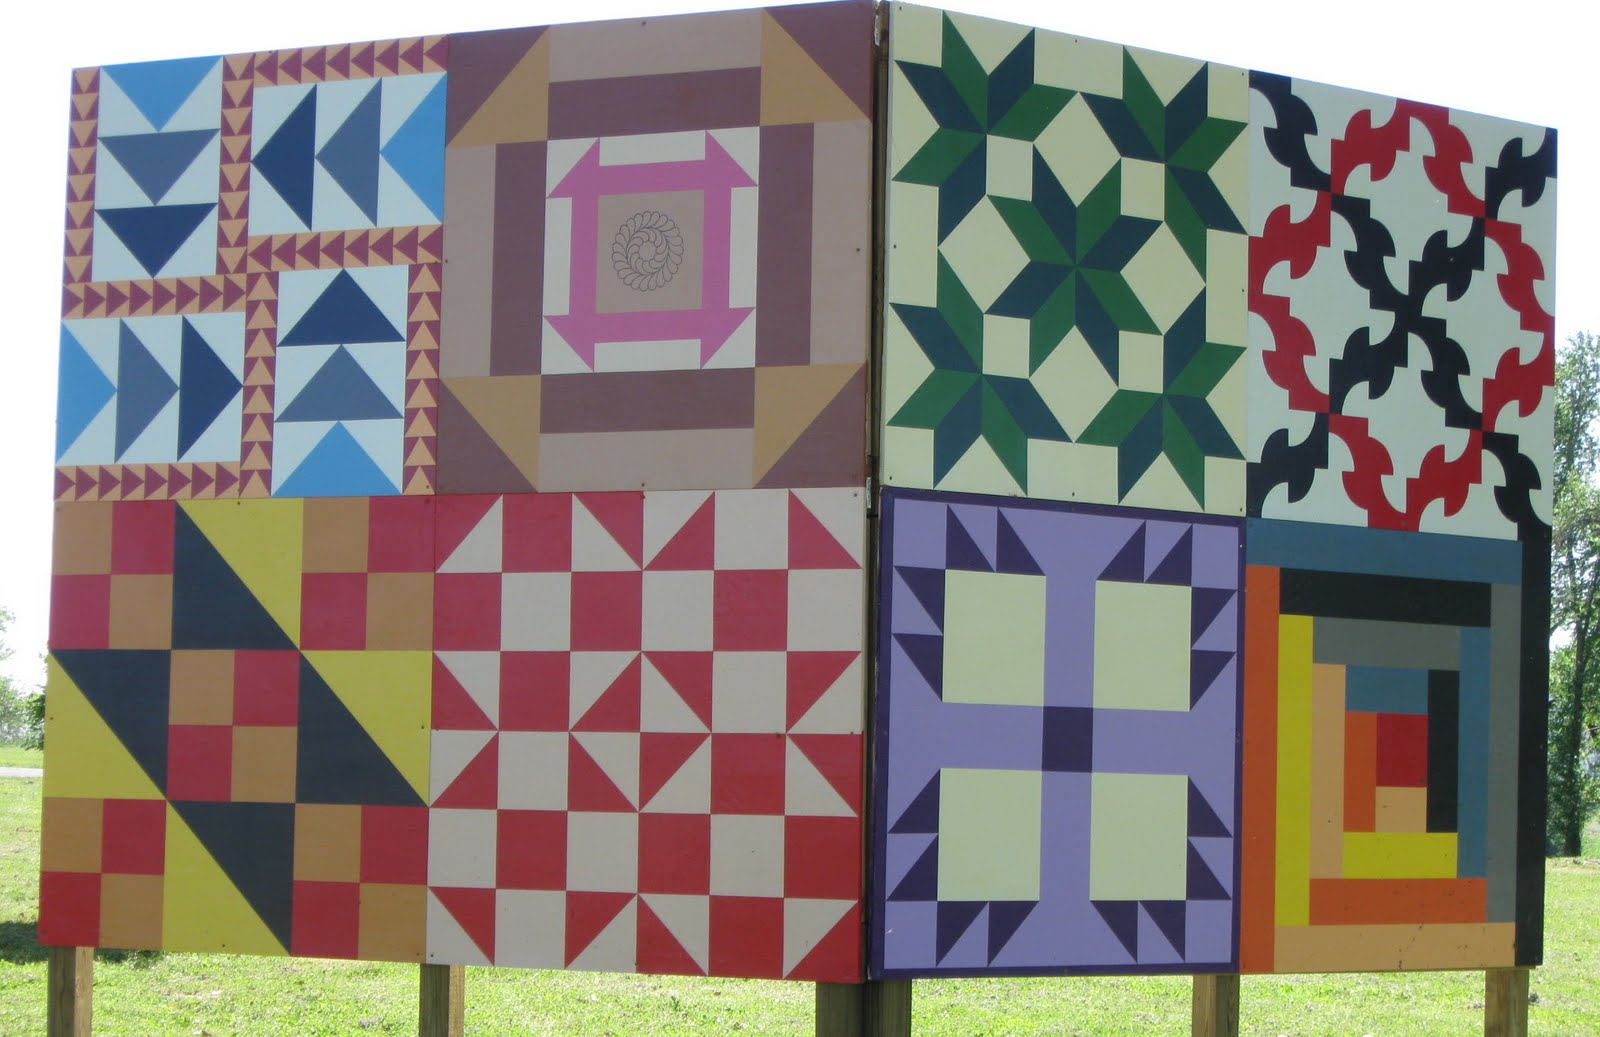 Underground Railroad Quilt Patterns Cool Decorating Ideas